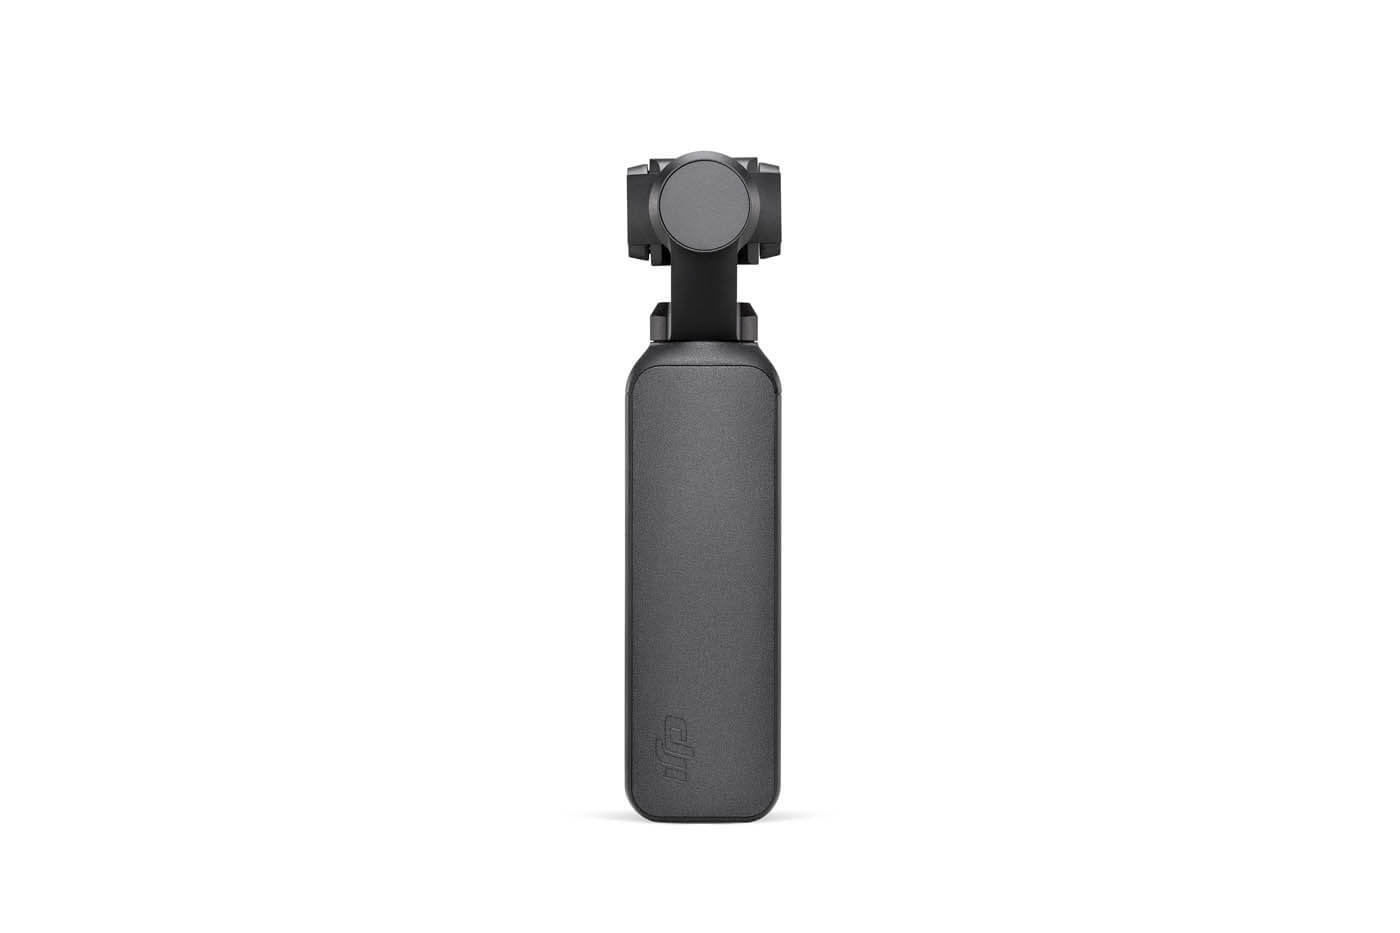 DJI osmo pocket (1)